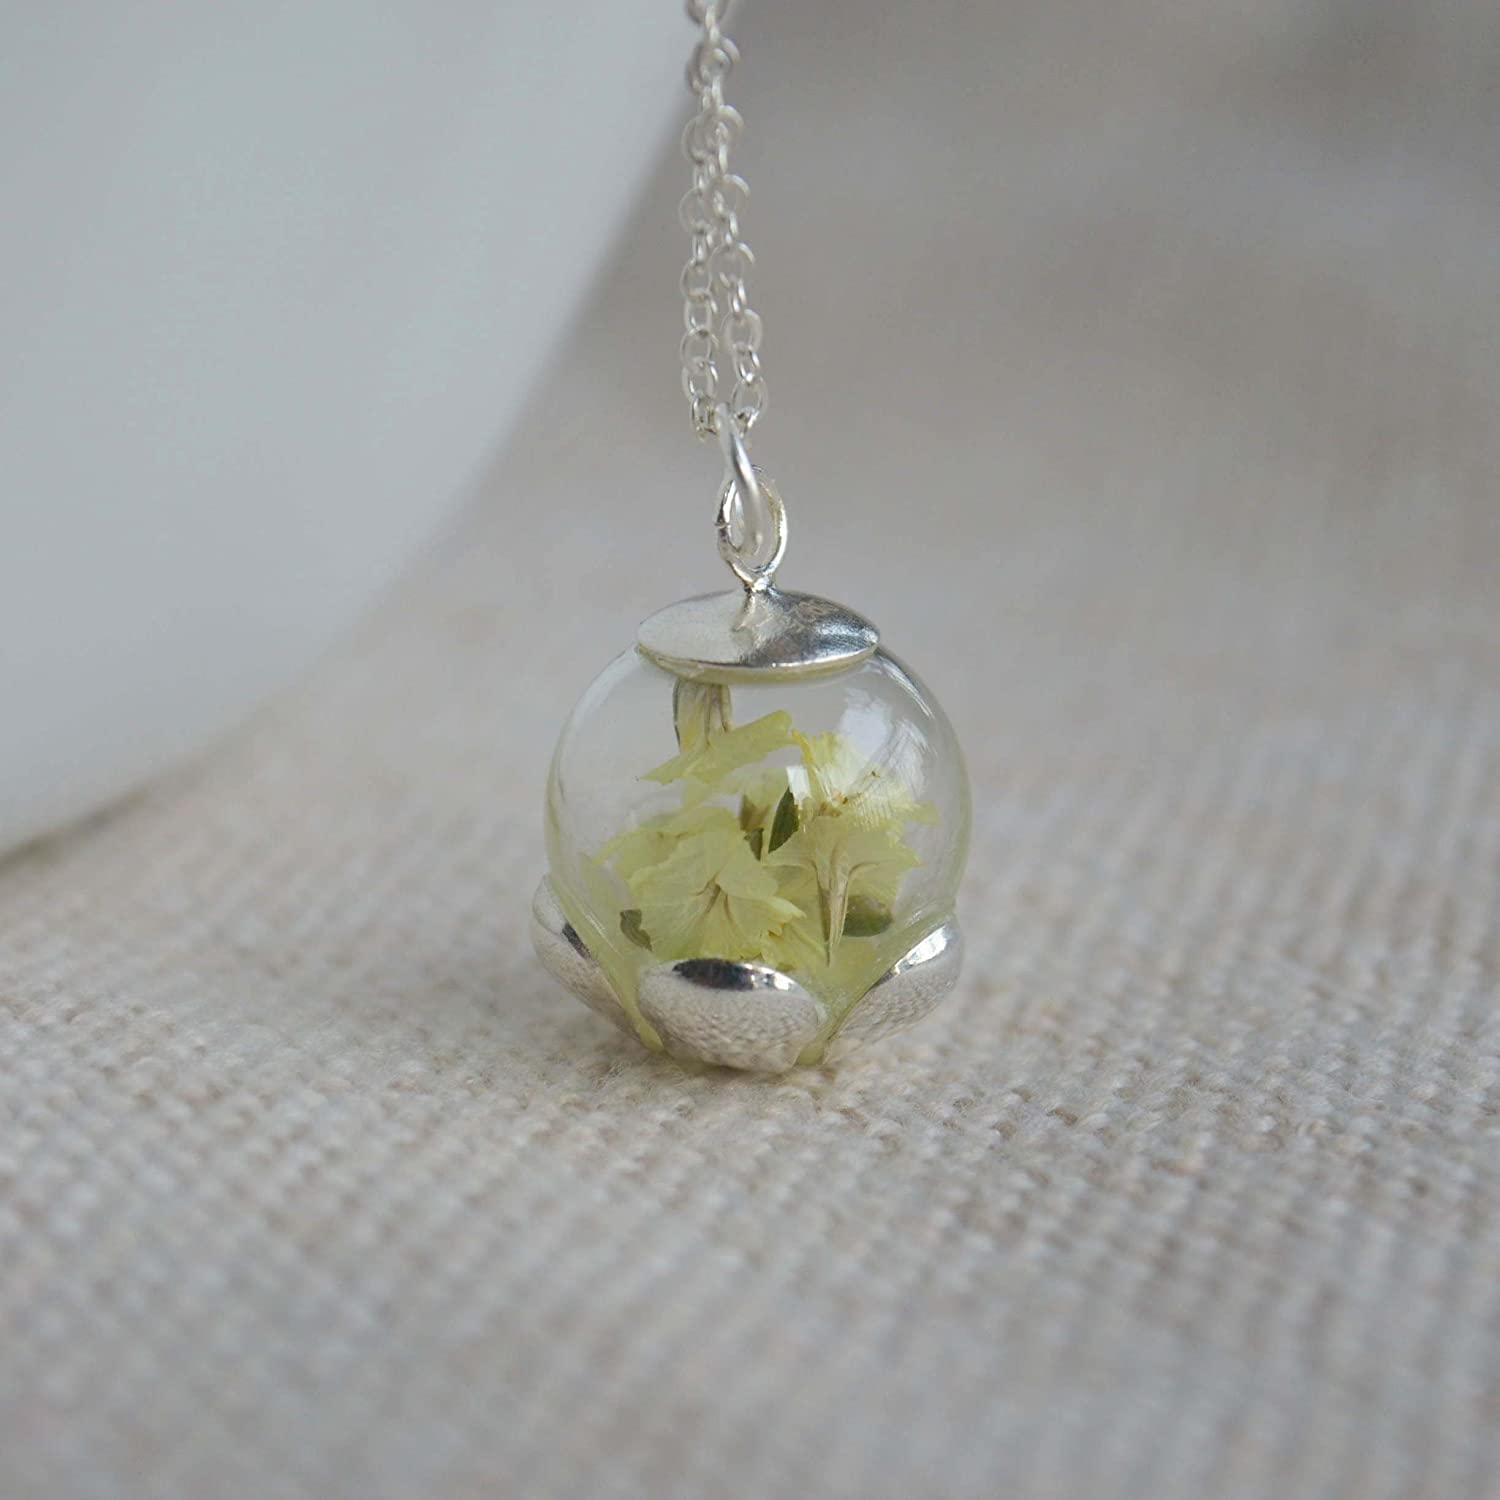 Limonium Real Flower Luminous Glow In The Dark 925 Sterling Silver Necklace 17.7 Length